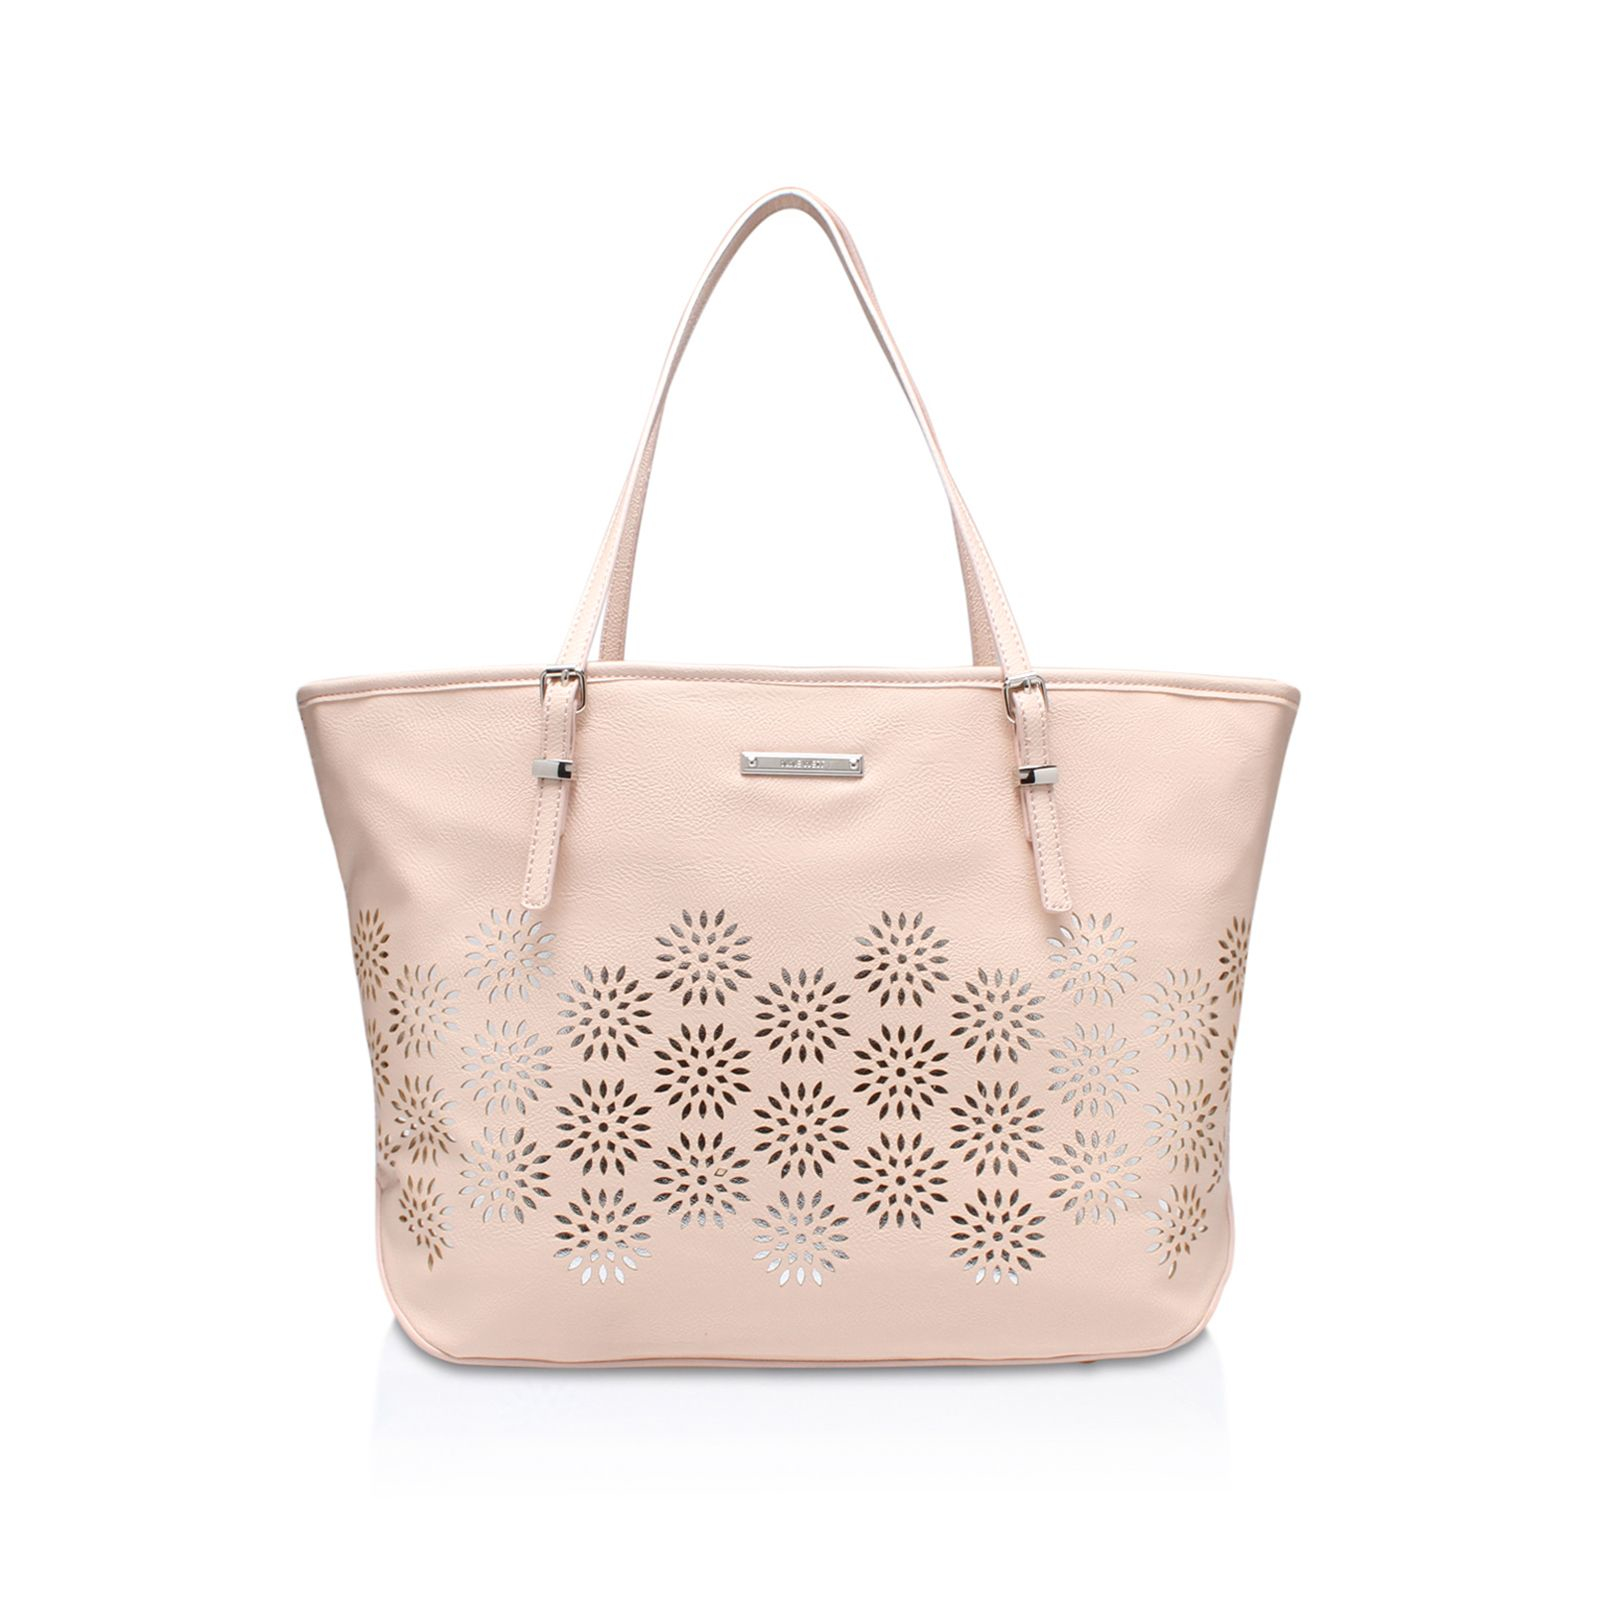 Nine West Synthetic It Girl Tote Bag in Pink